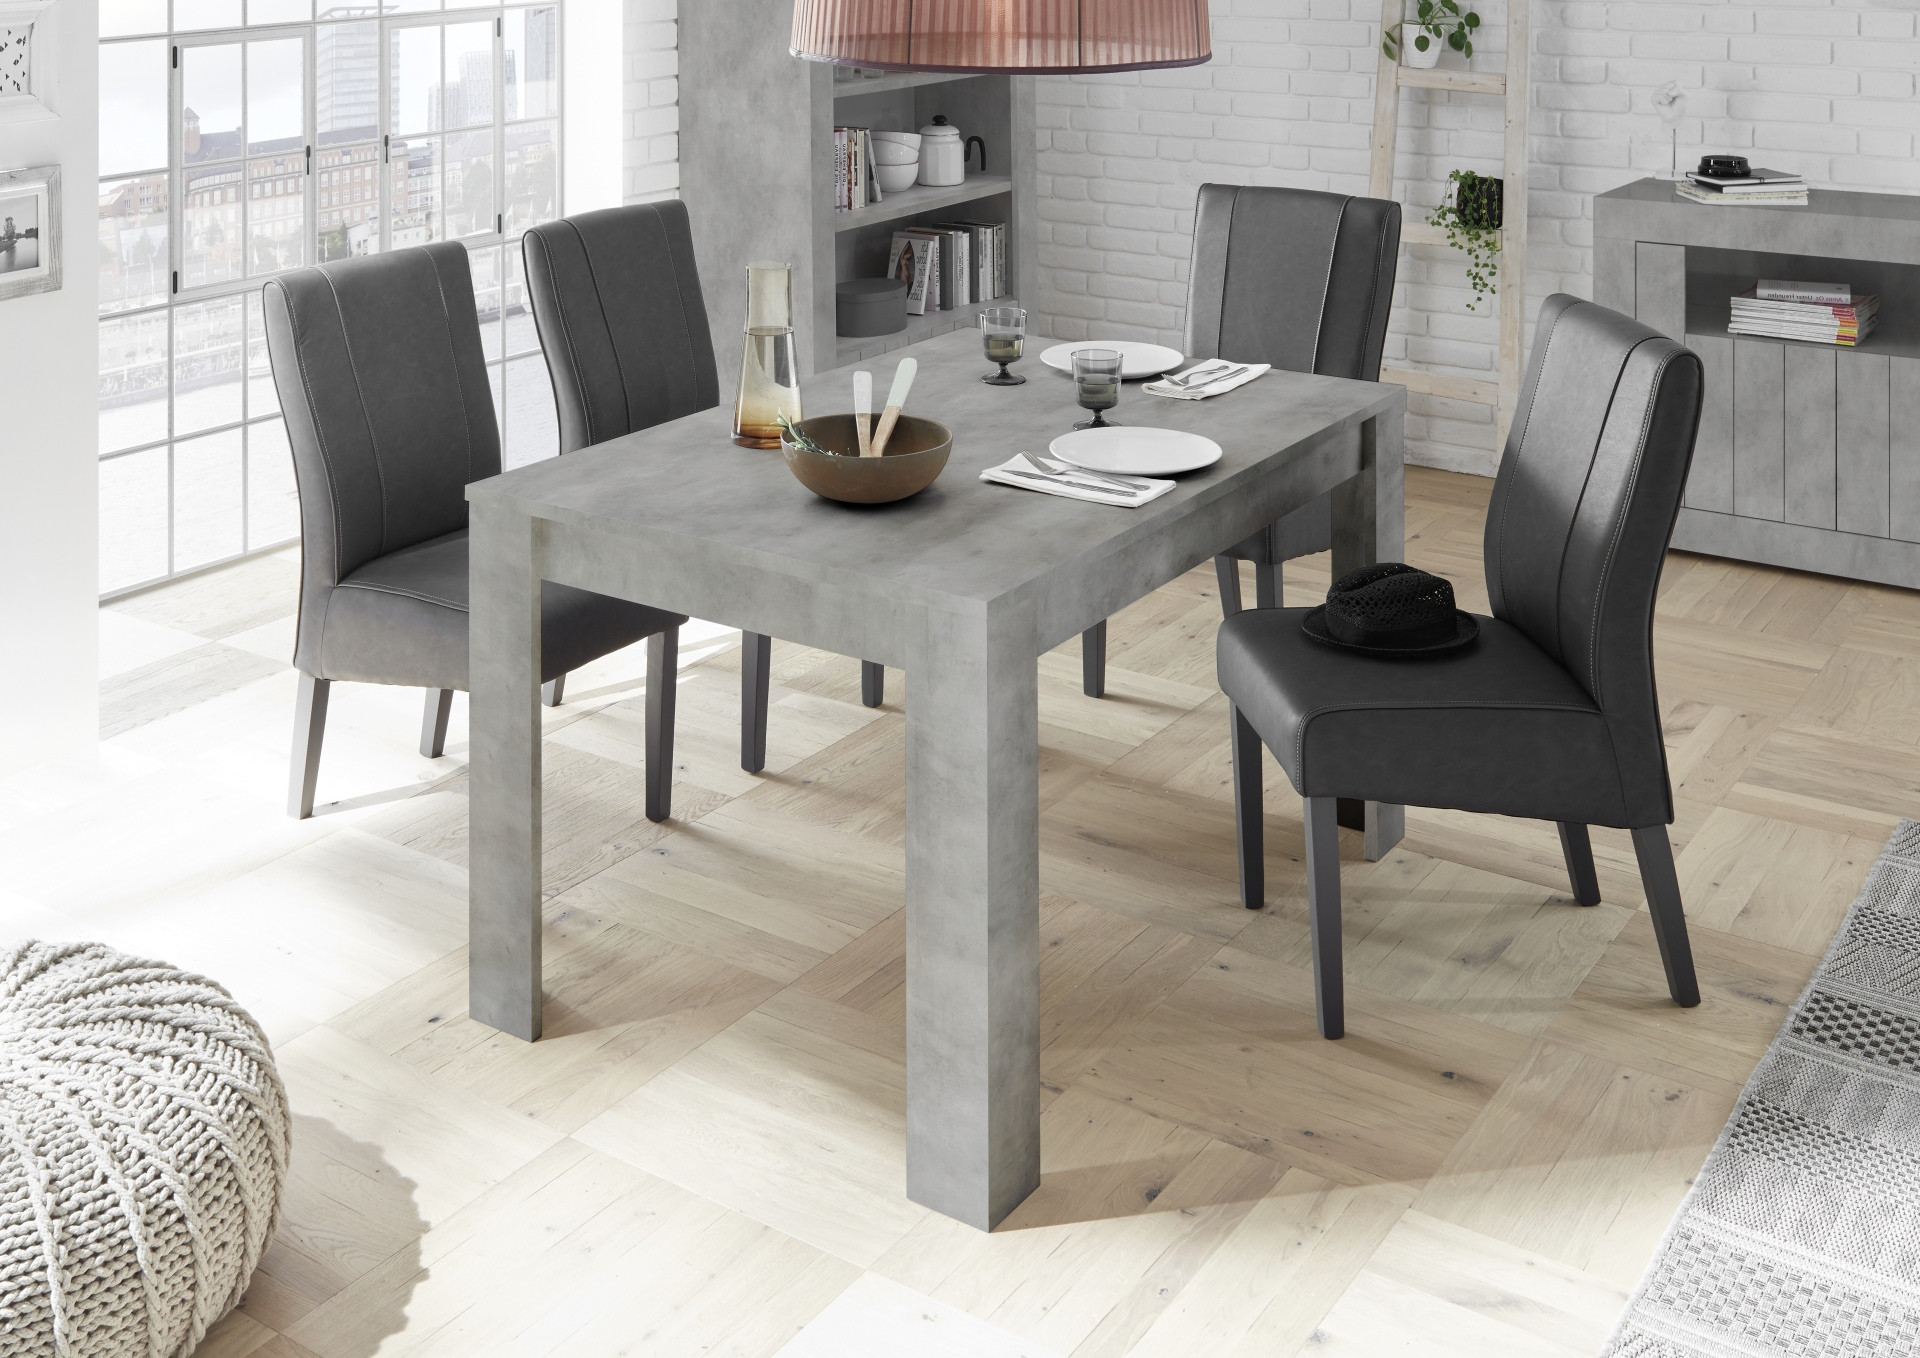 Picture of: Fiorano Extendable Dining Table In Beton Grey Finish Dining Tables 3680 Sena Home Furniture